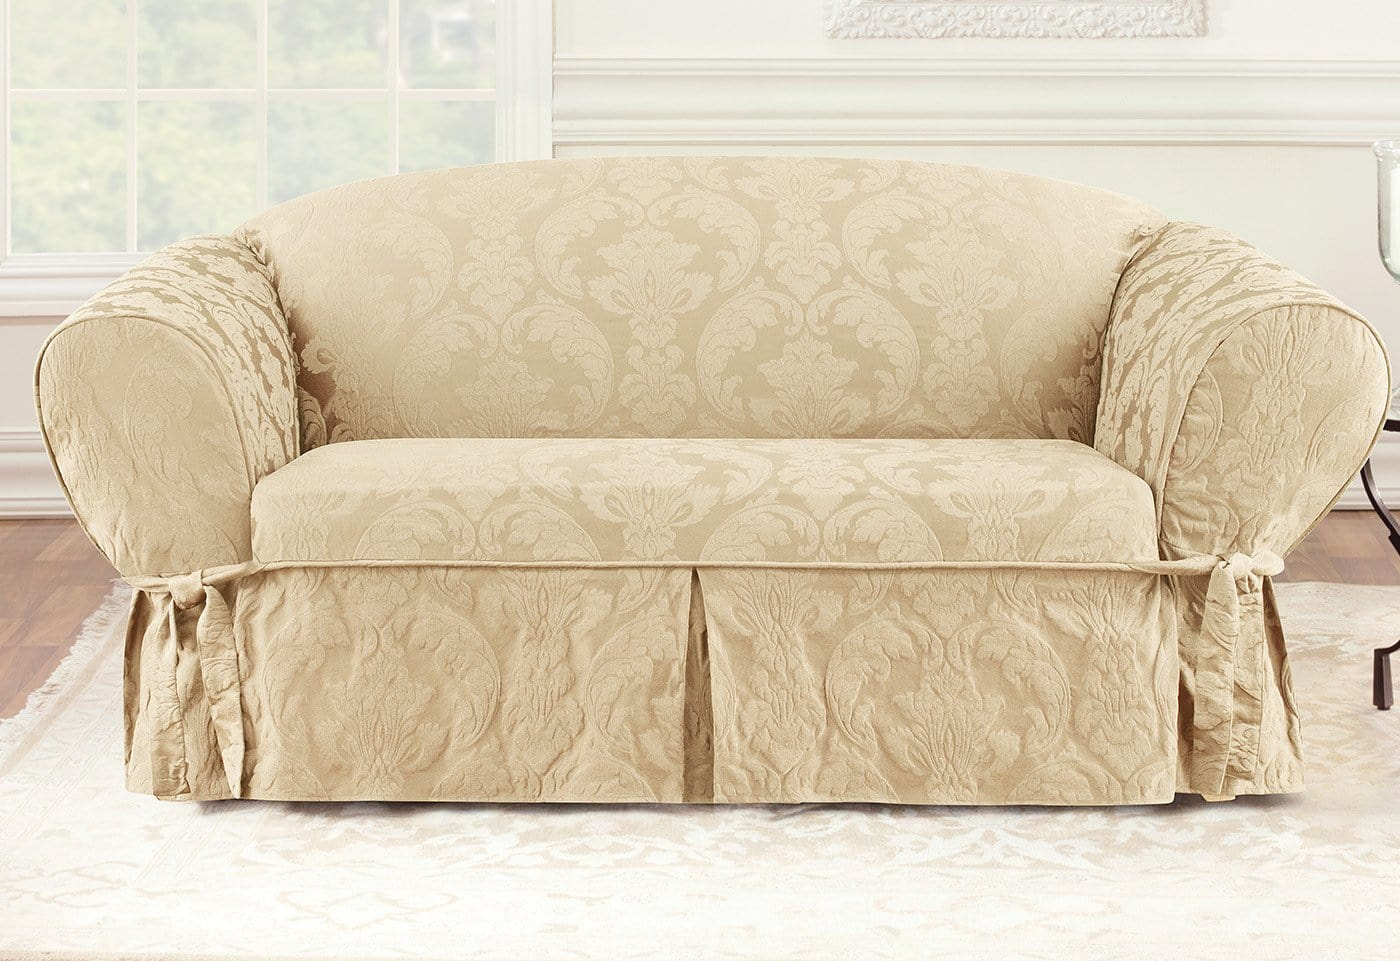 Matelasse Damask One Piece Loveseat Slipcover Surefit